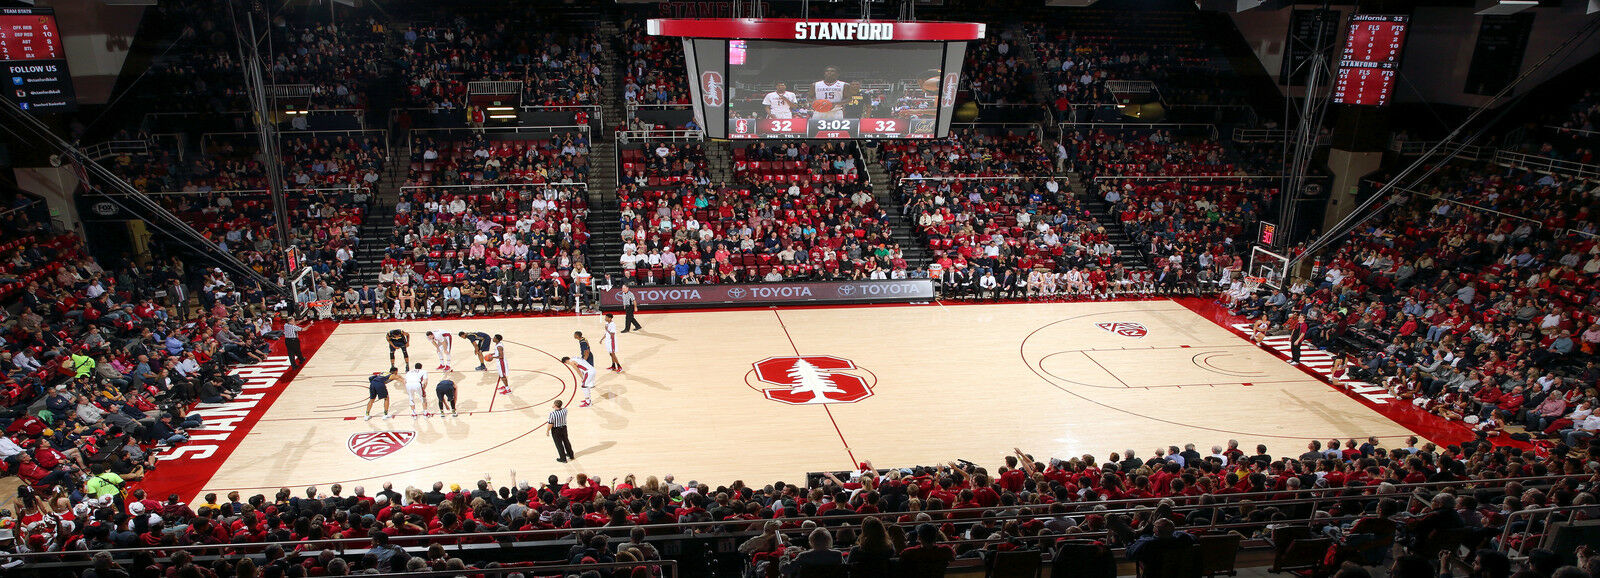 Northeastern Huskies at Stanford Cardinal Basketball